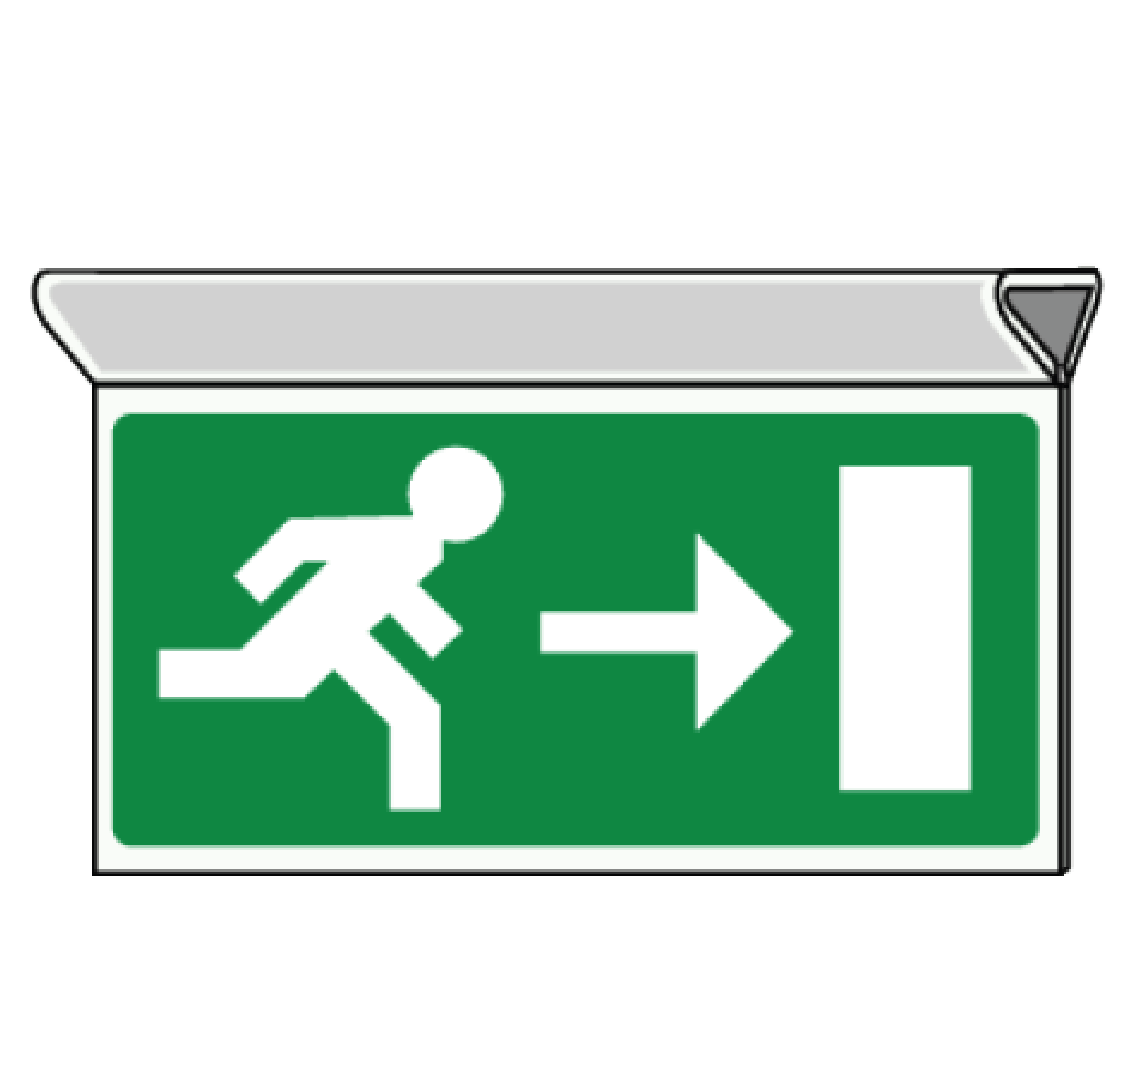 Suspended evacuation pictogram